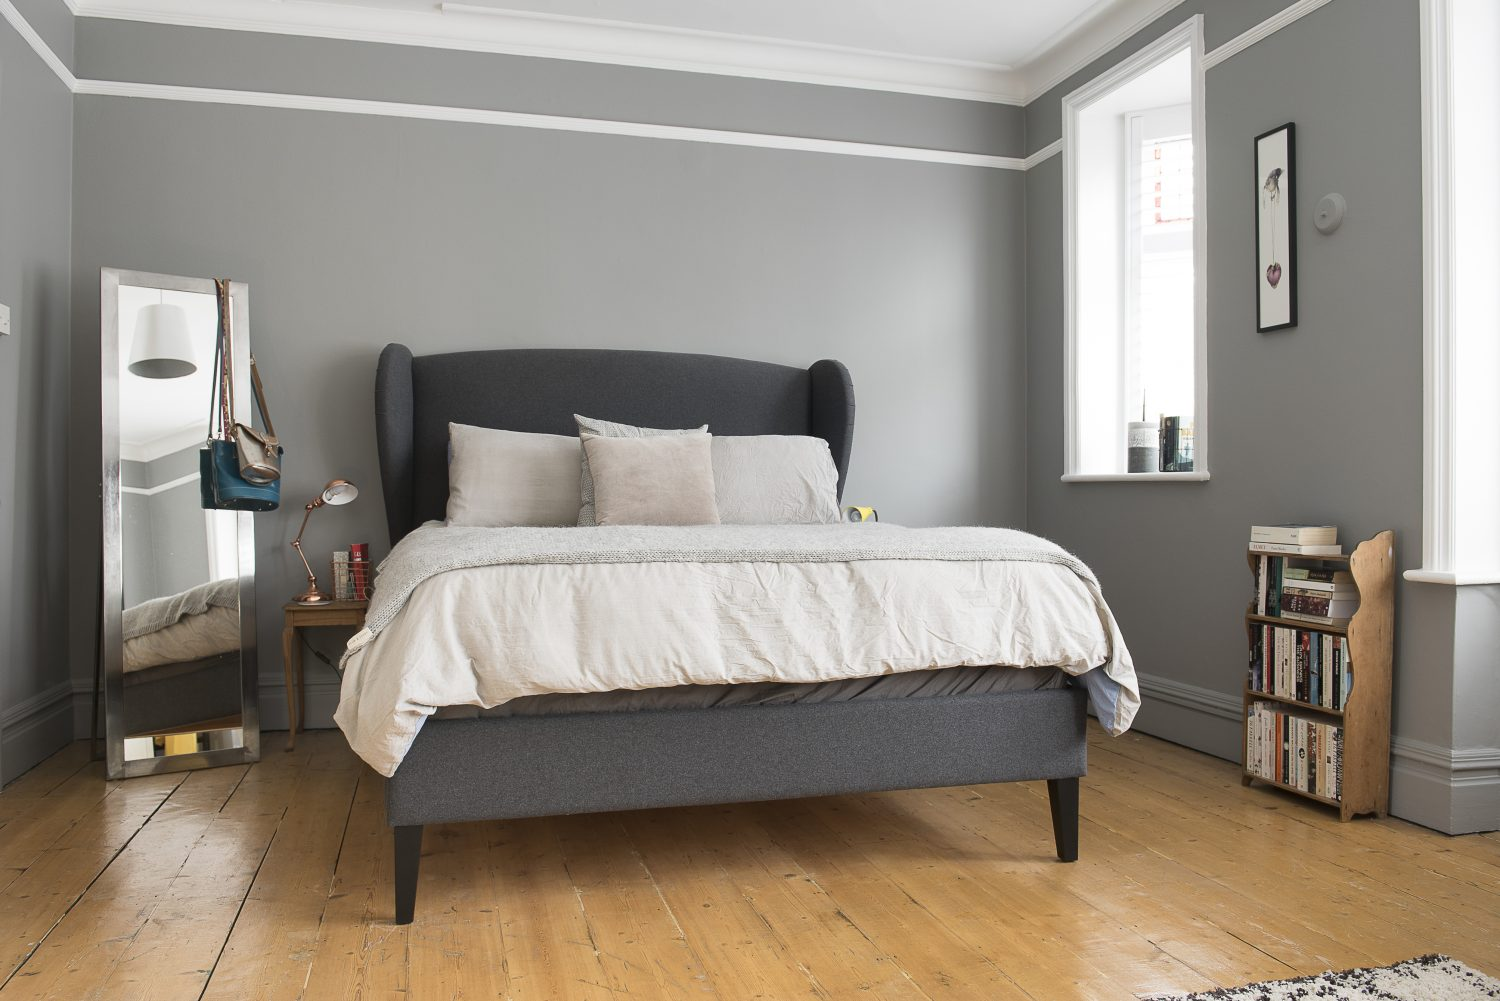 The walls of the master bedroom are painted in Manor House Gray by Farrow & Ball. A king-sized bed by Sofa.com takes pride of place next to a pretty lantern window